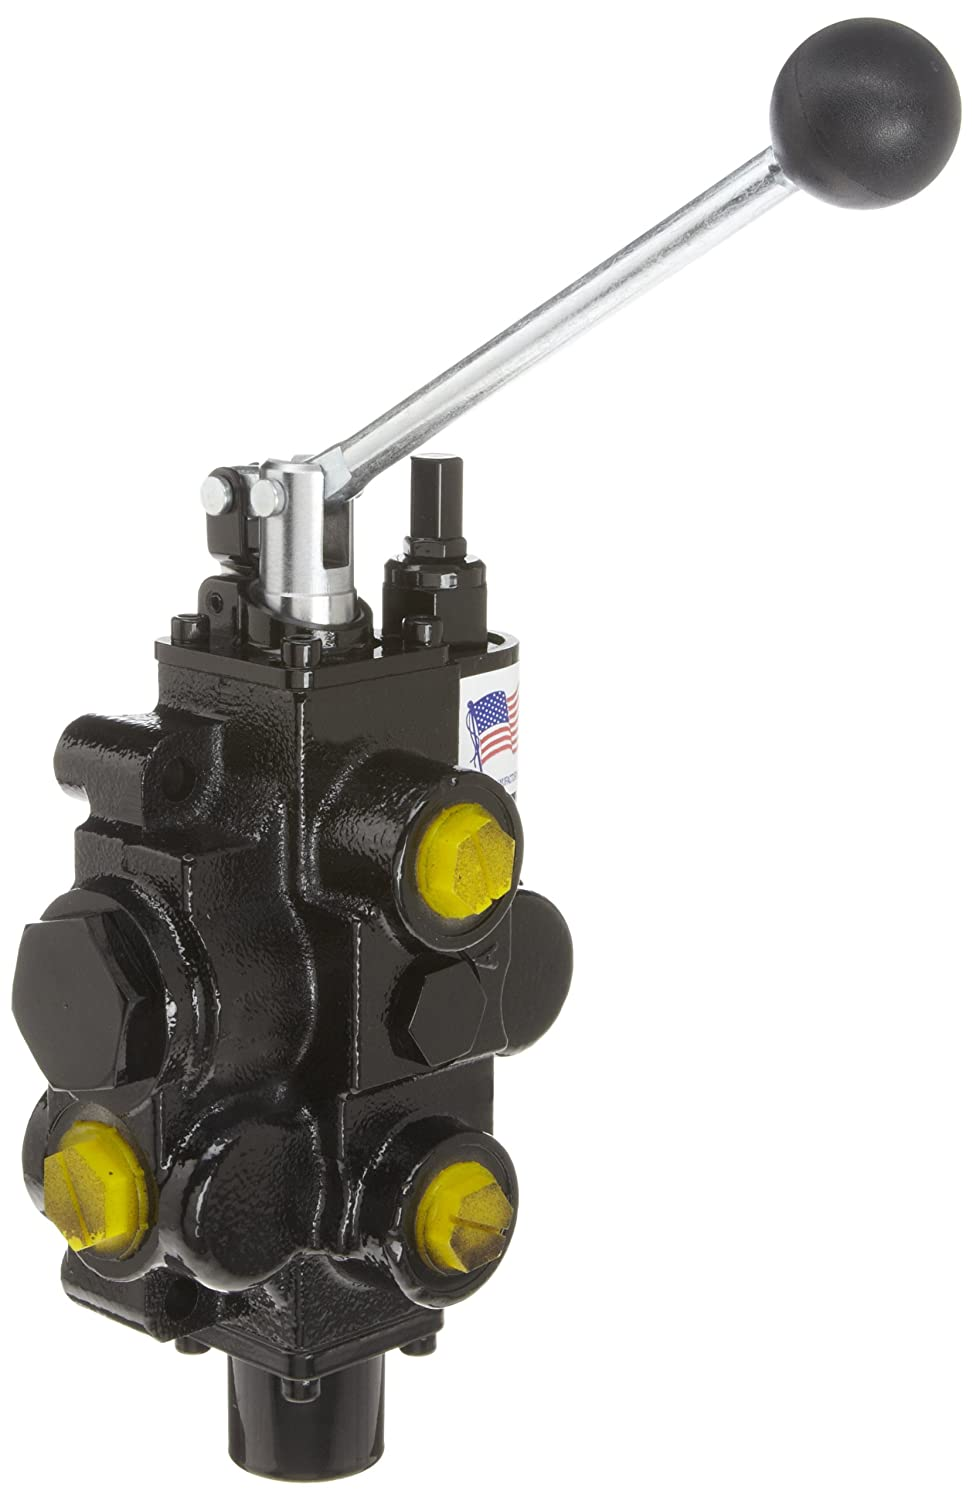 Lever Handle 4 Ways In//Out: #12 SAE Tandem 3000 psi Work #10 SAE 3 Positions Spring Center 1 Spool Prince RD516CA5A4B1 Directional Control Valve 30 gpm Monoblock Cast Iron